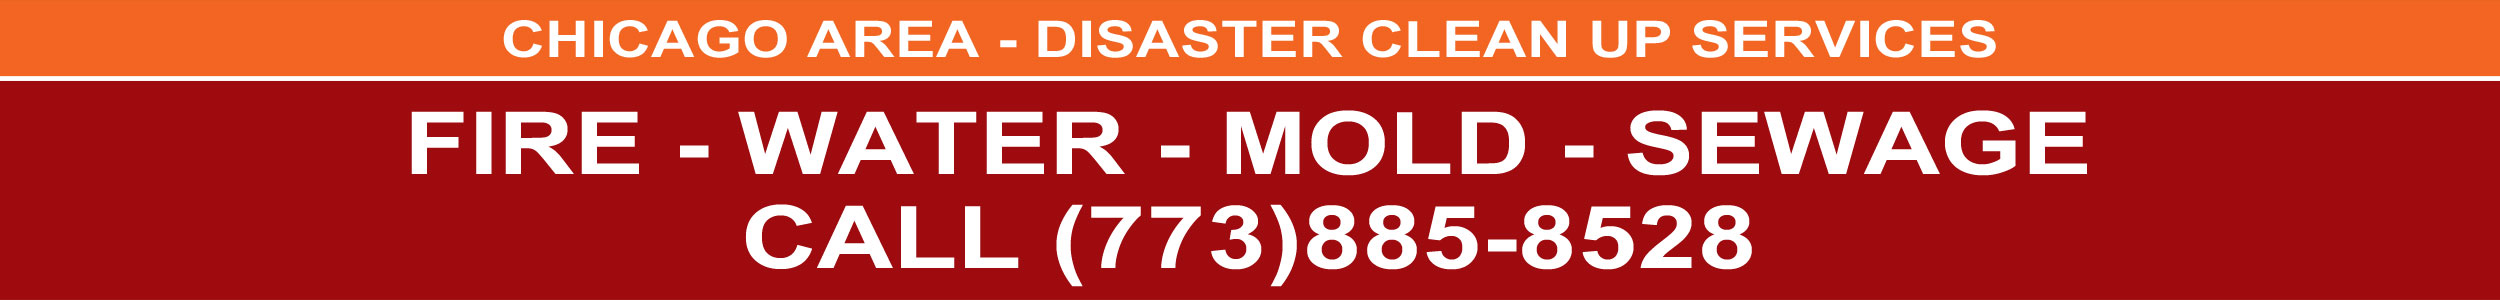 chicago residential disaster services